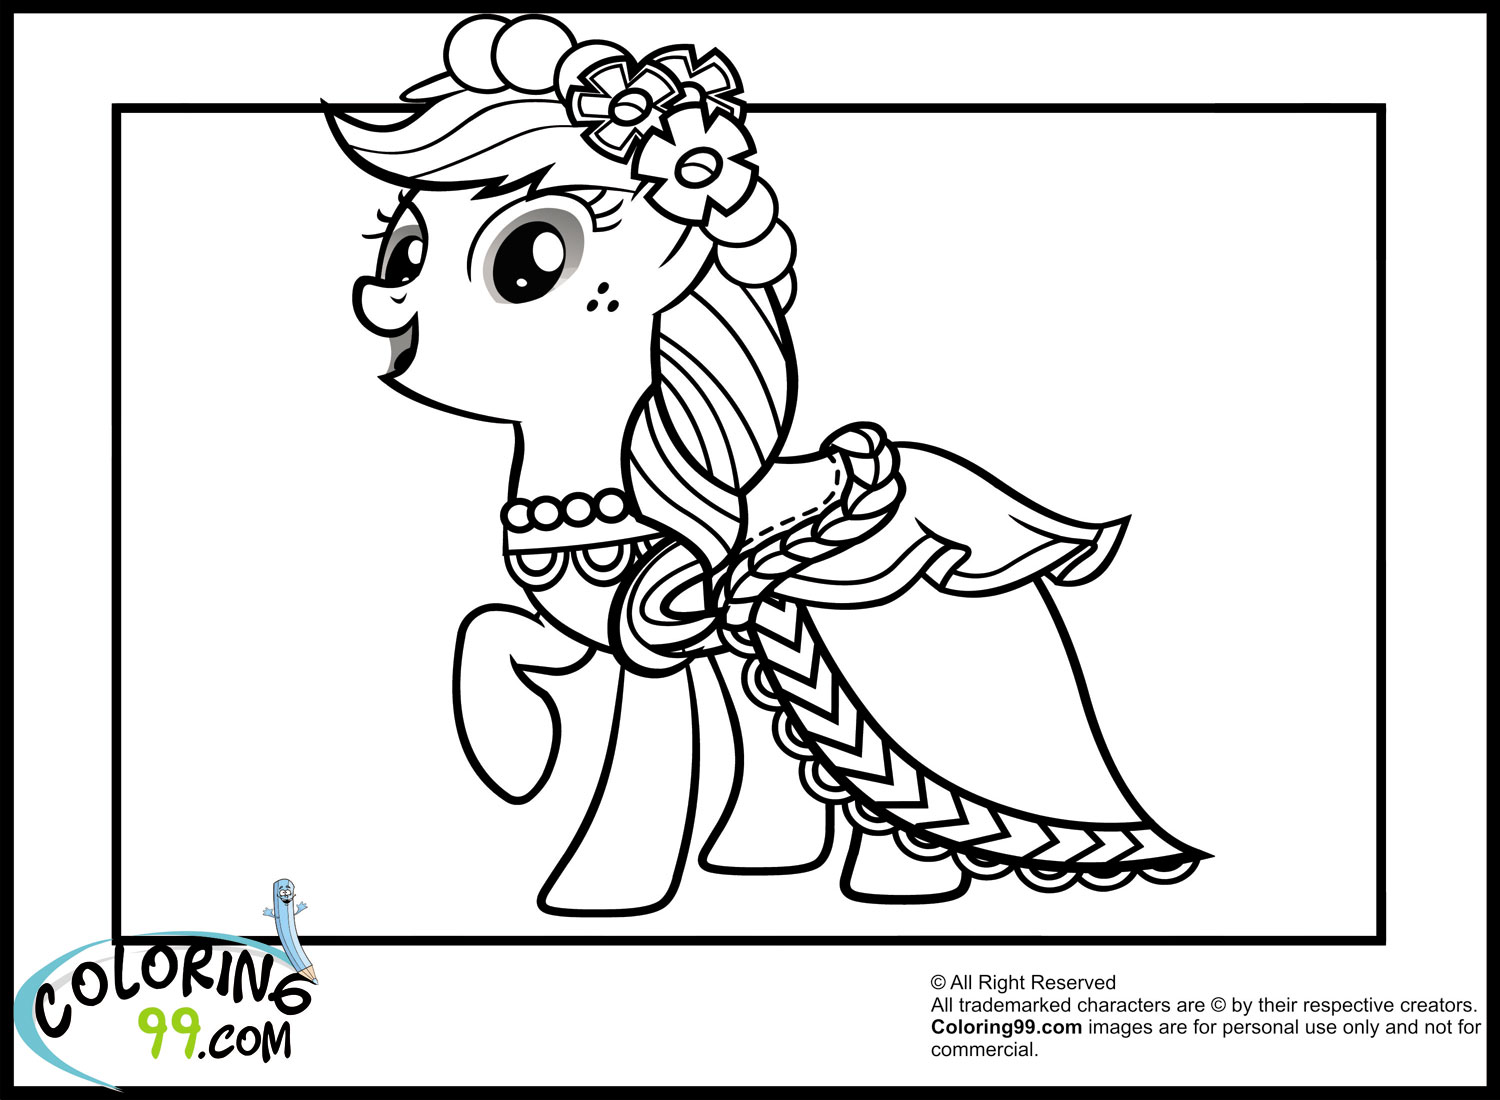 little pony printable coloring pages - free color pages for girls color pages Volunteer Canada